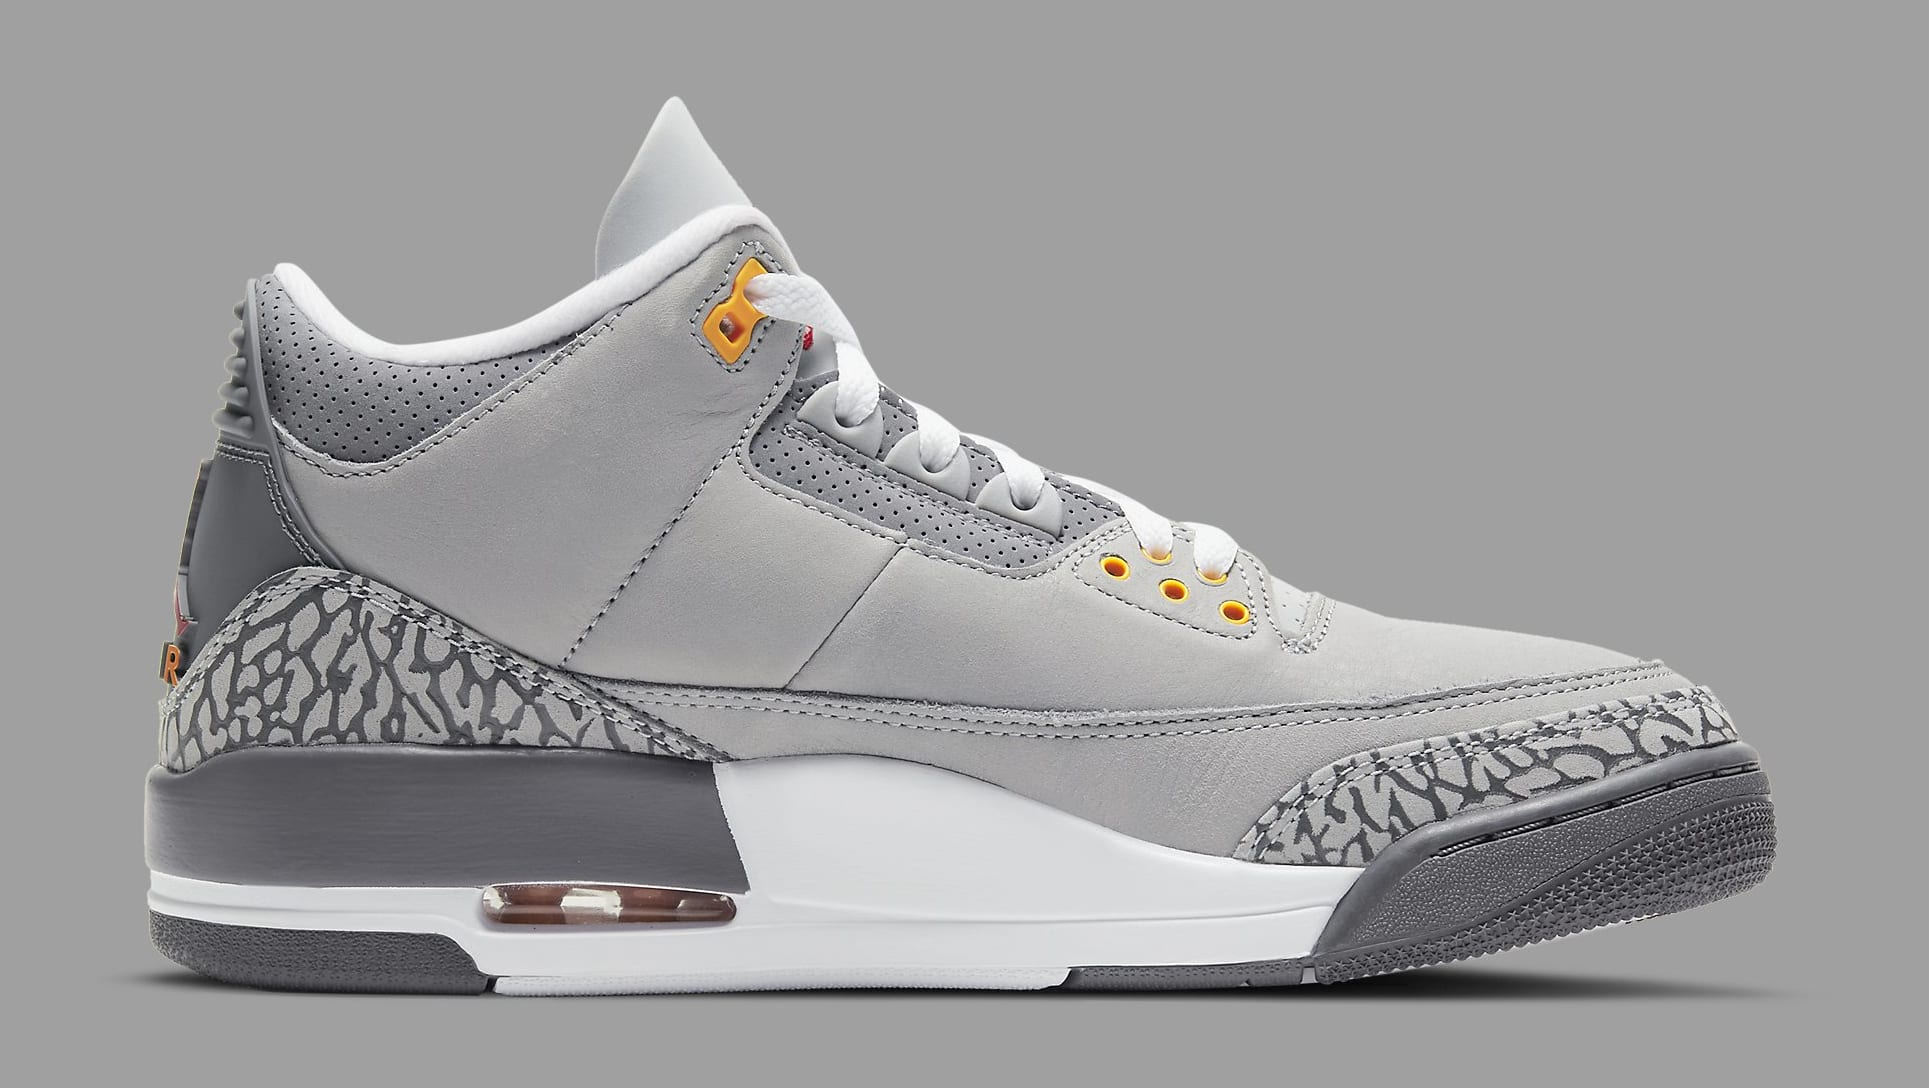 Air Jordan 3 Retro 'Cool Grey' 2021 CT8532-012 Medial